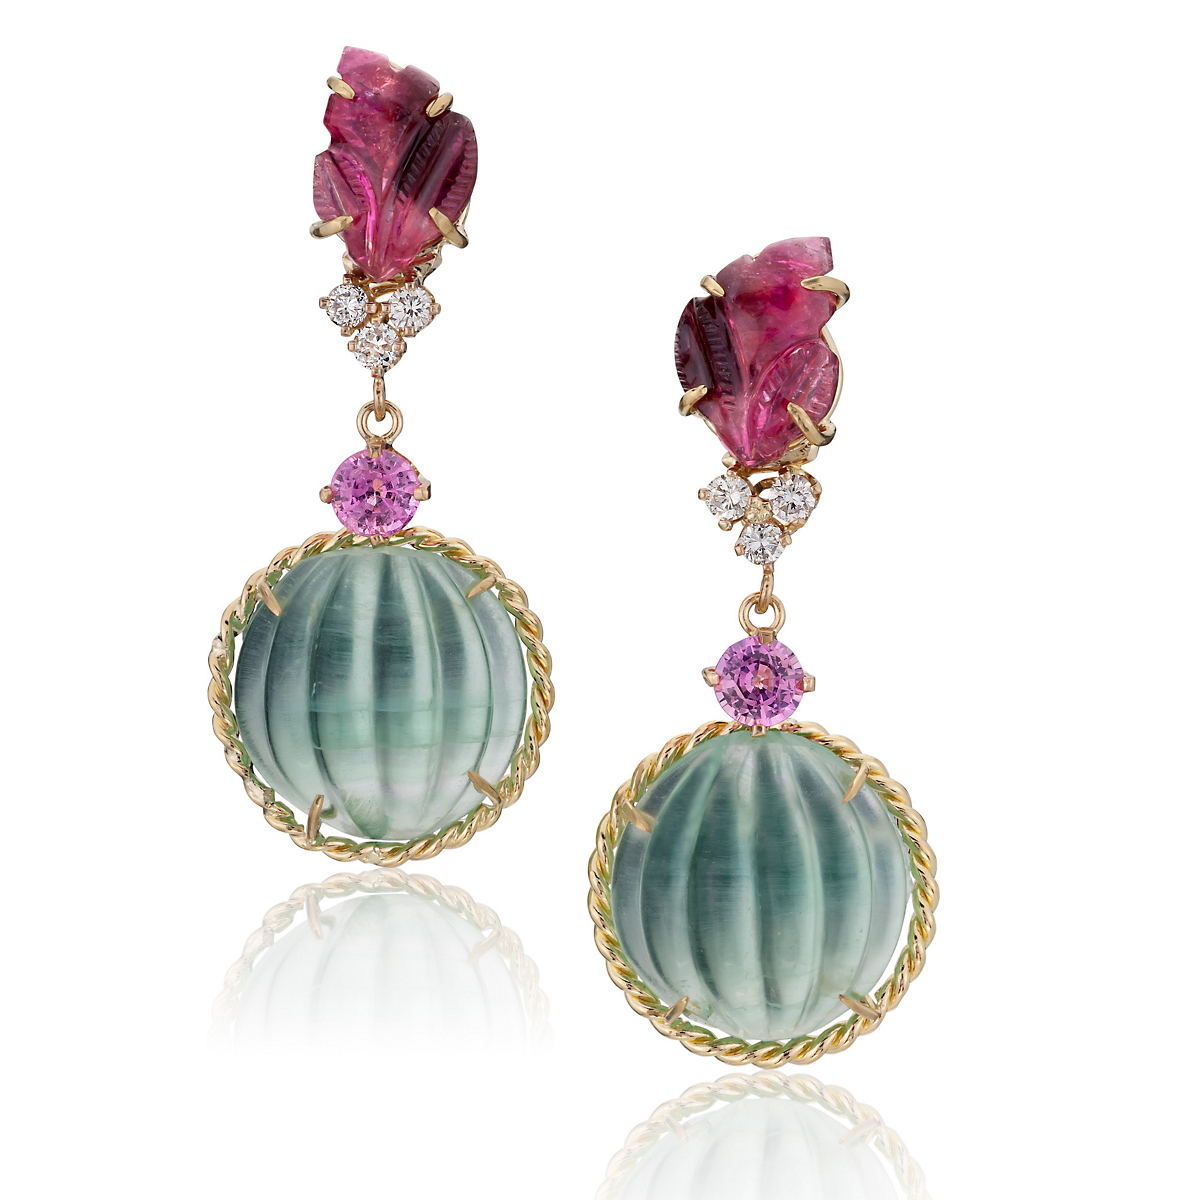 Russell Trusso Tourmaline Leaf & Melon Drop Earrings